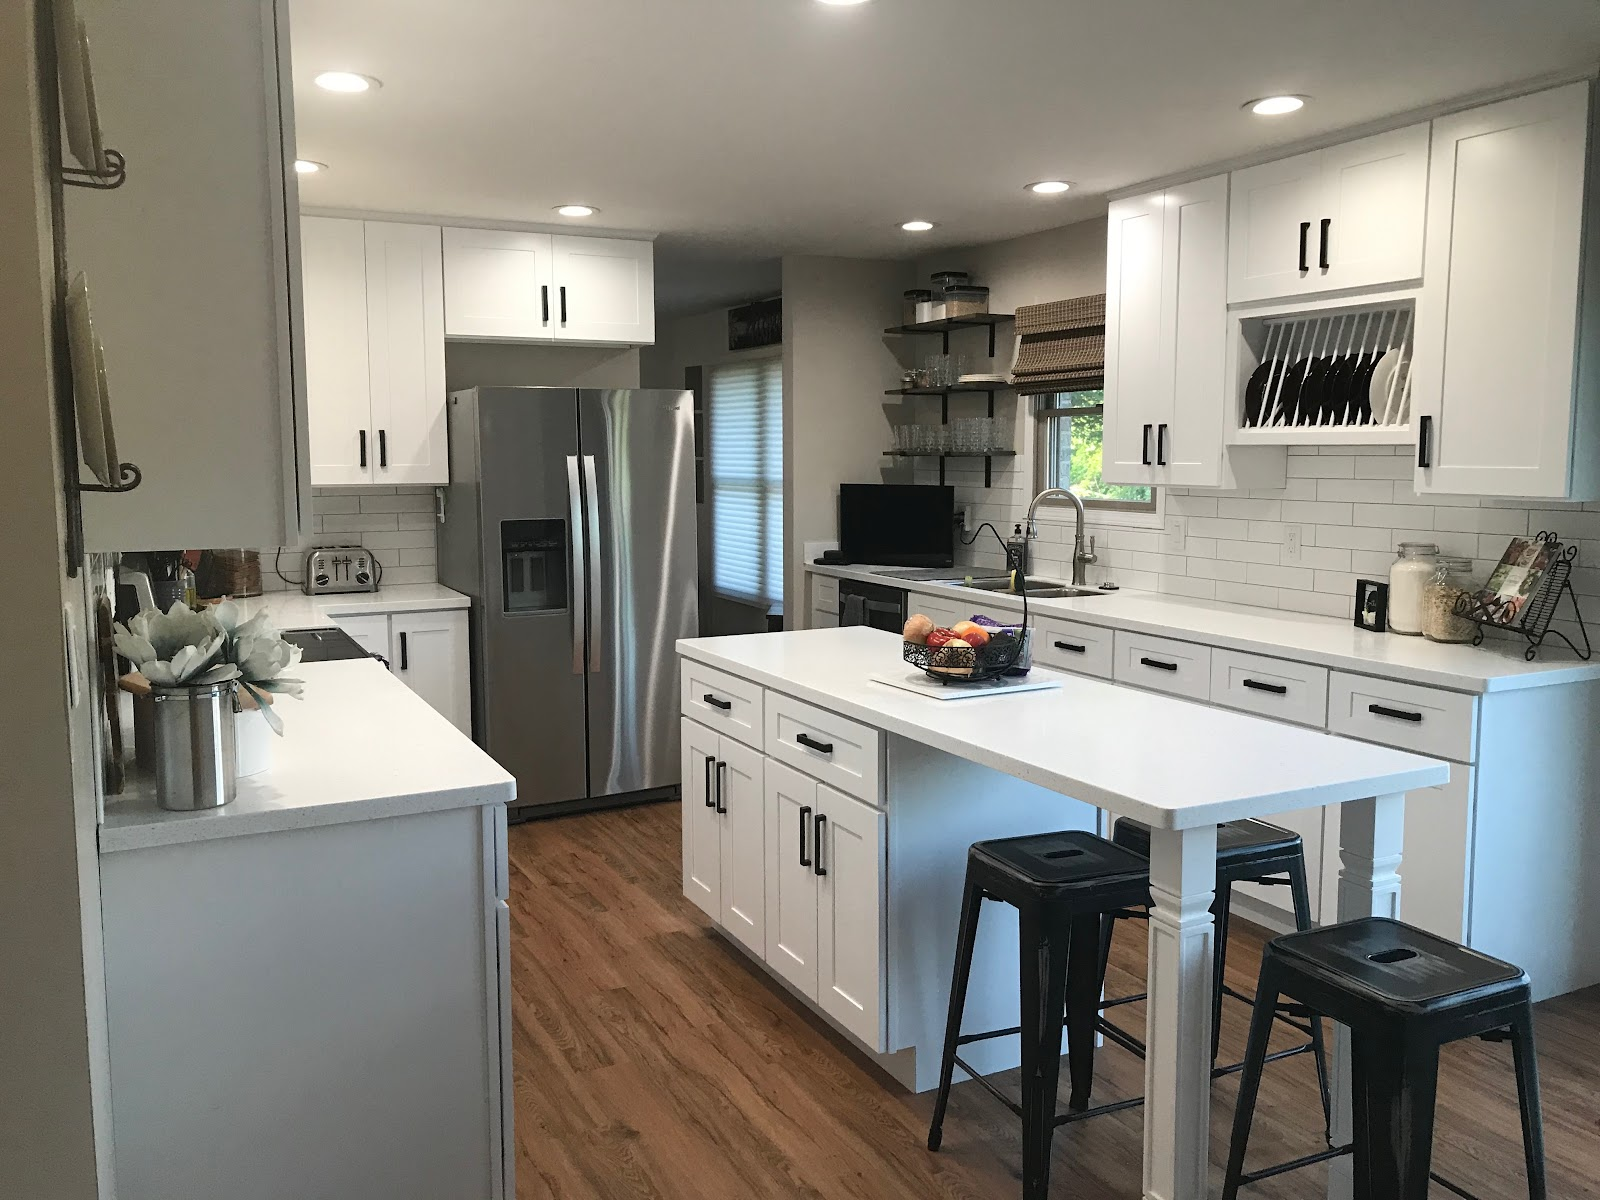 white shaker cabinets kitchen with matte black hardware and wood floors. a small center island with white countertops and black barstools match the kitchen design scheme